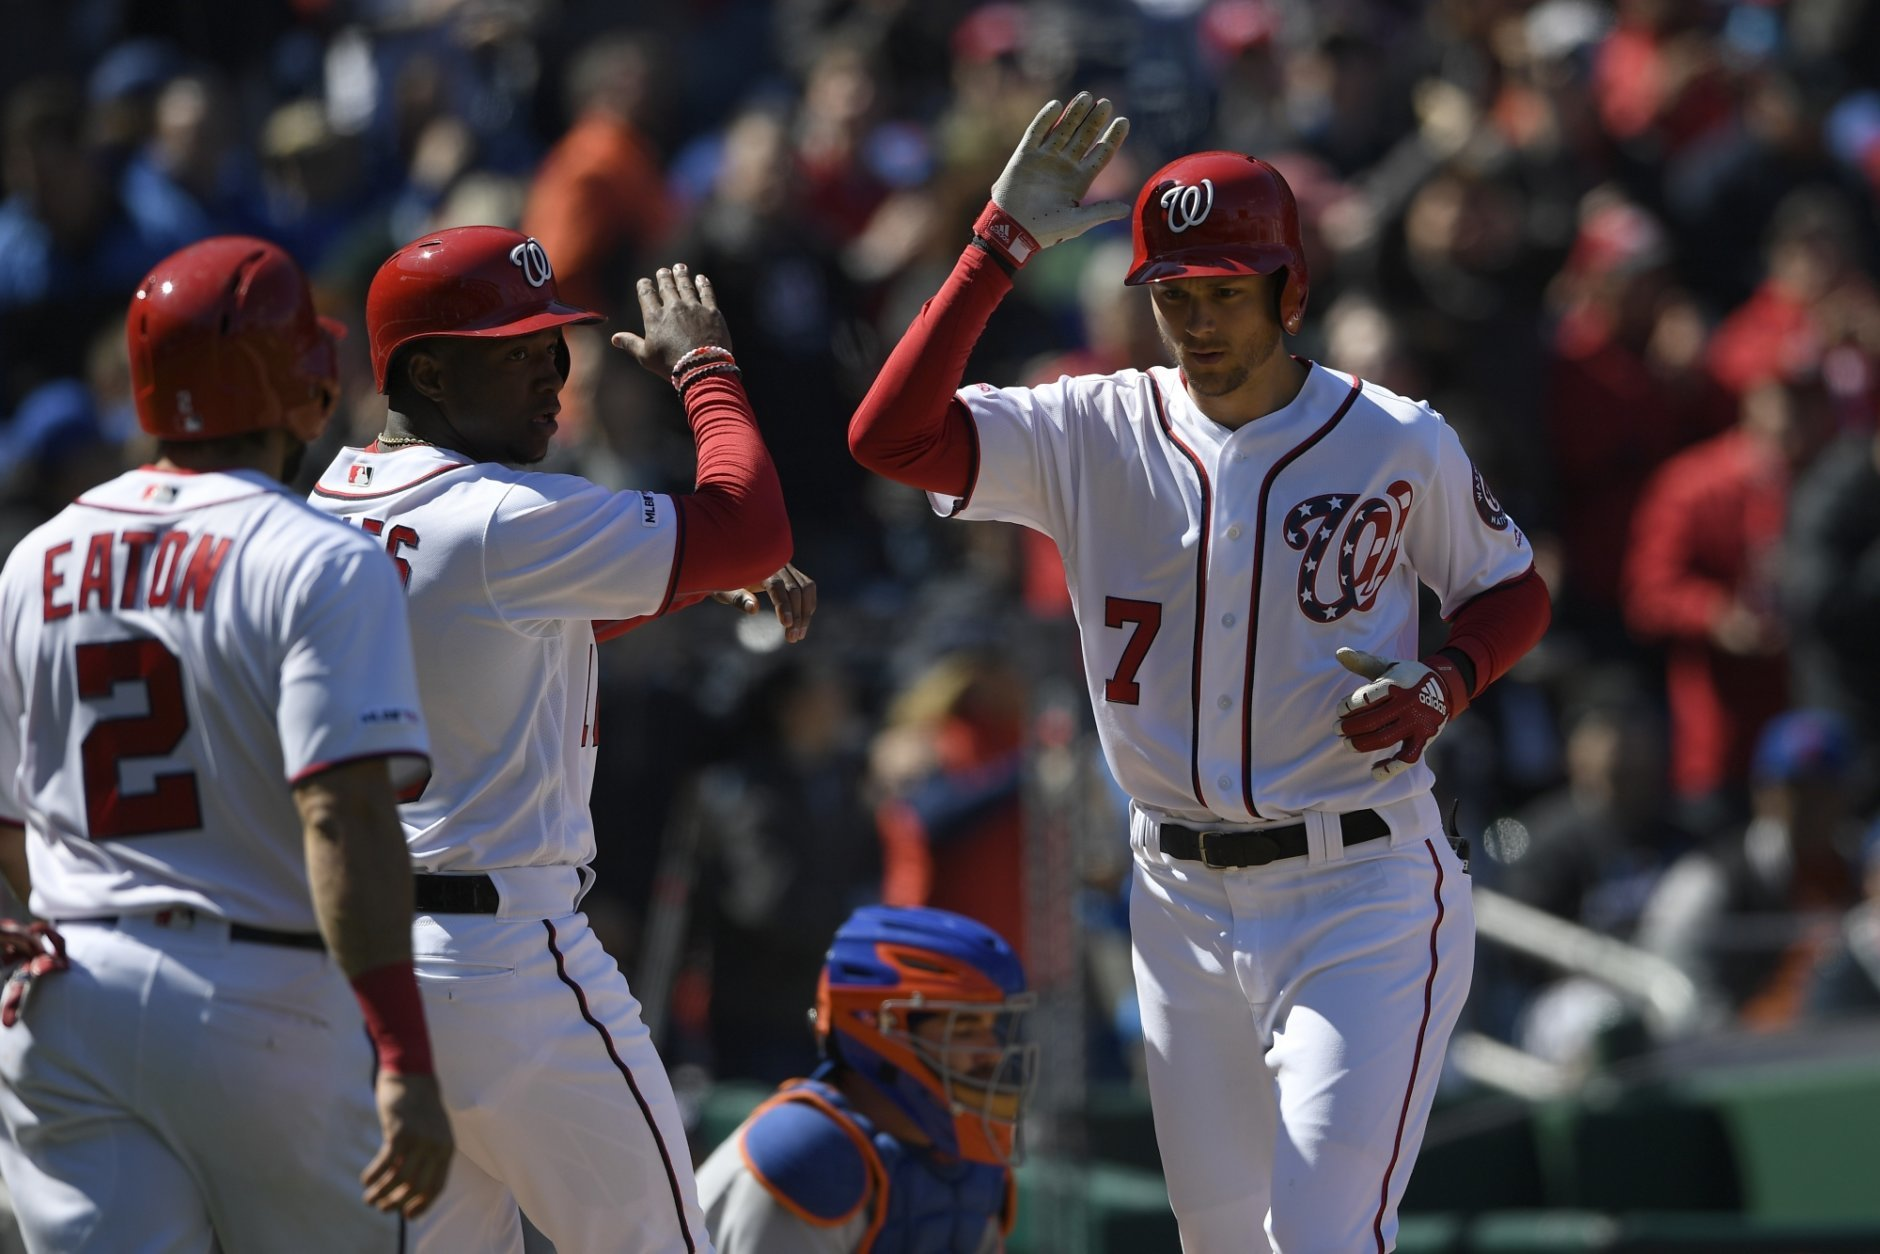 Washington Nationals' Trea Turner (7) celebrates his three-run home run with Victor Robles, center, and Adam Eaton (2) during the third inning of a baseball game against the New York Mets, Sunday, March 31, 2019, in Washington. (AP Photo/Nick Wass)